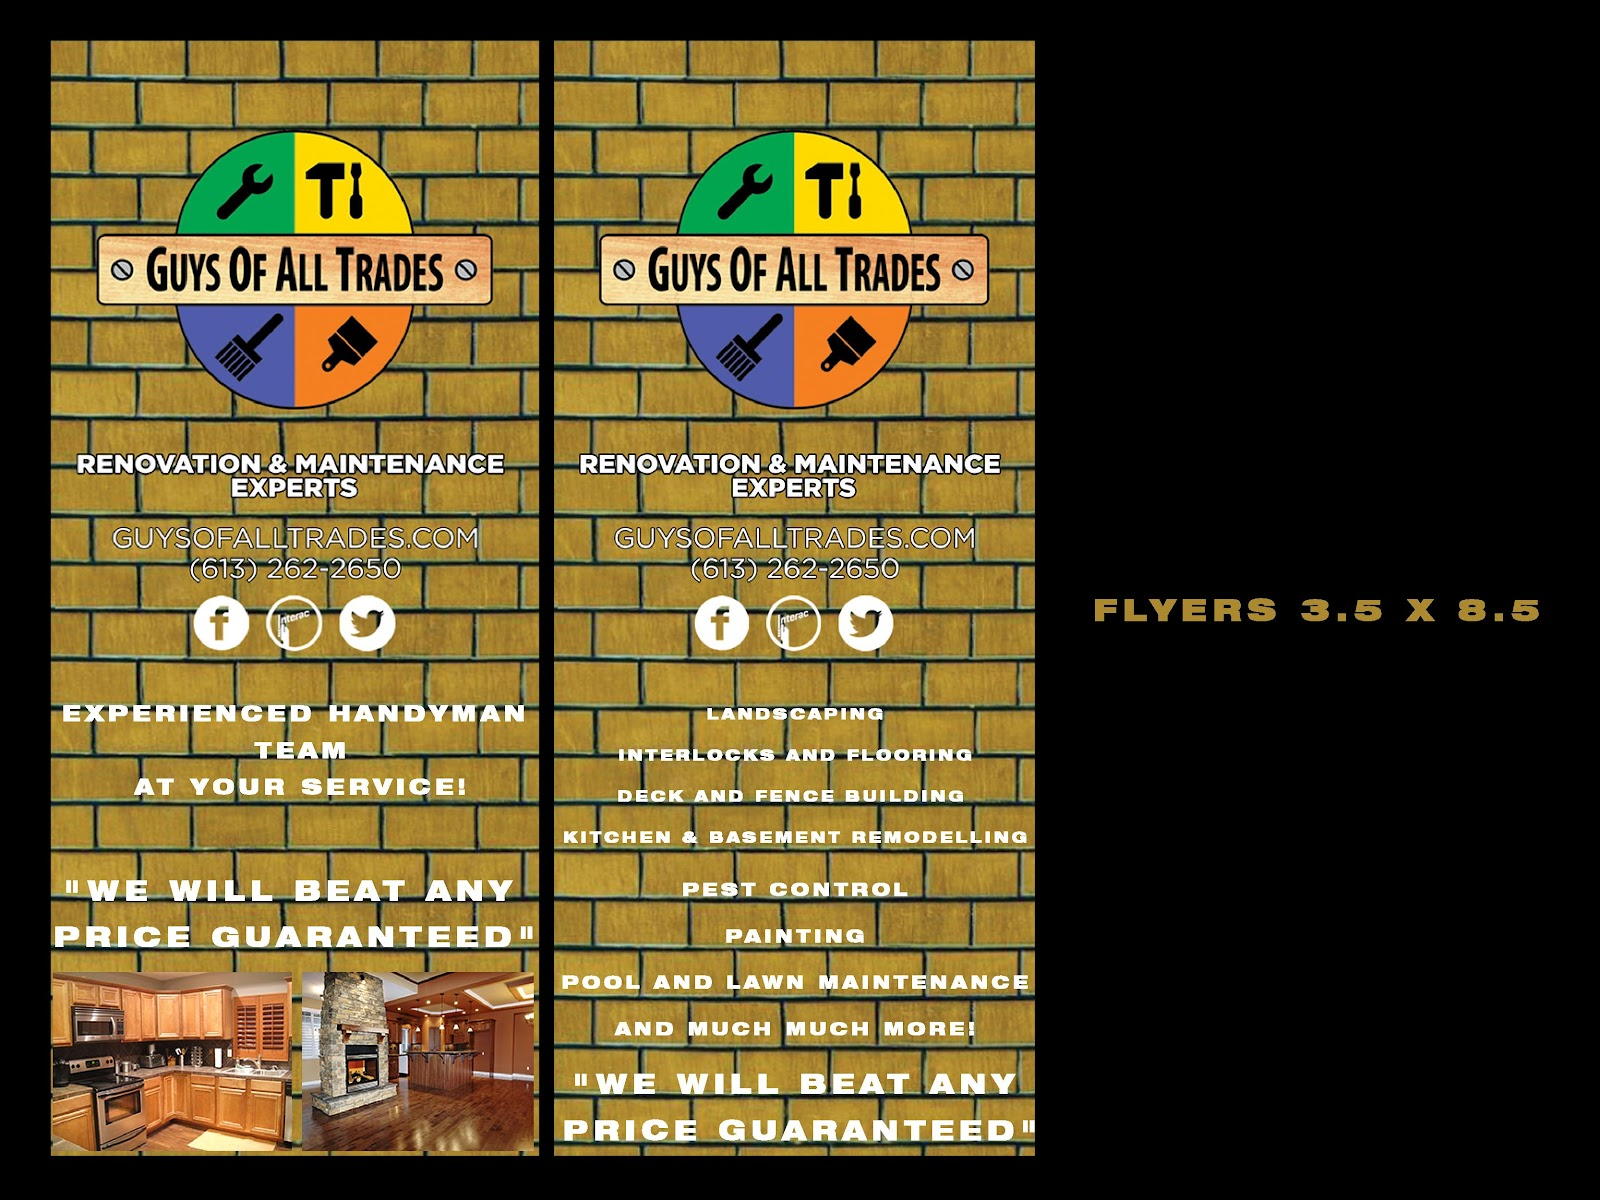 GOAT-3.5x8.5-flyers-samples-2-page-001.jpg